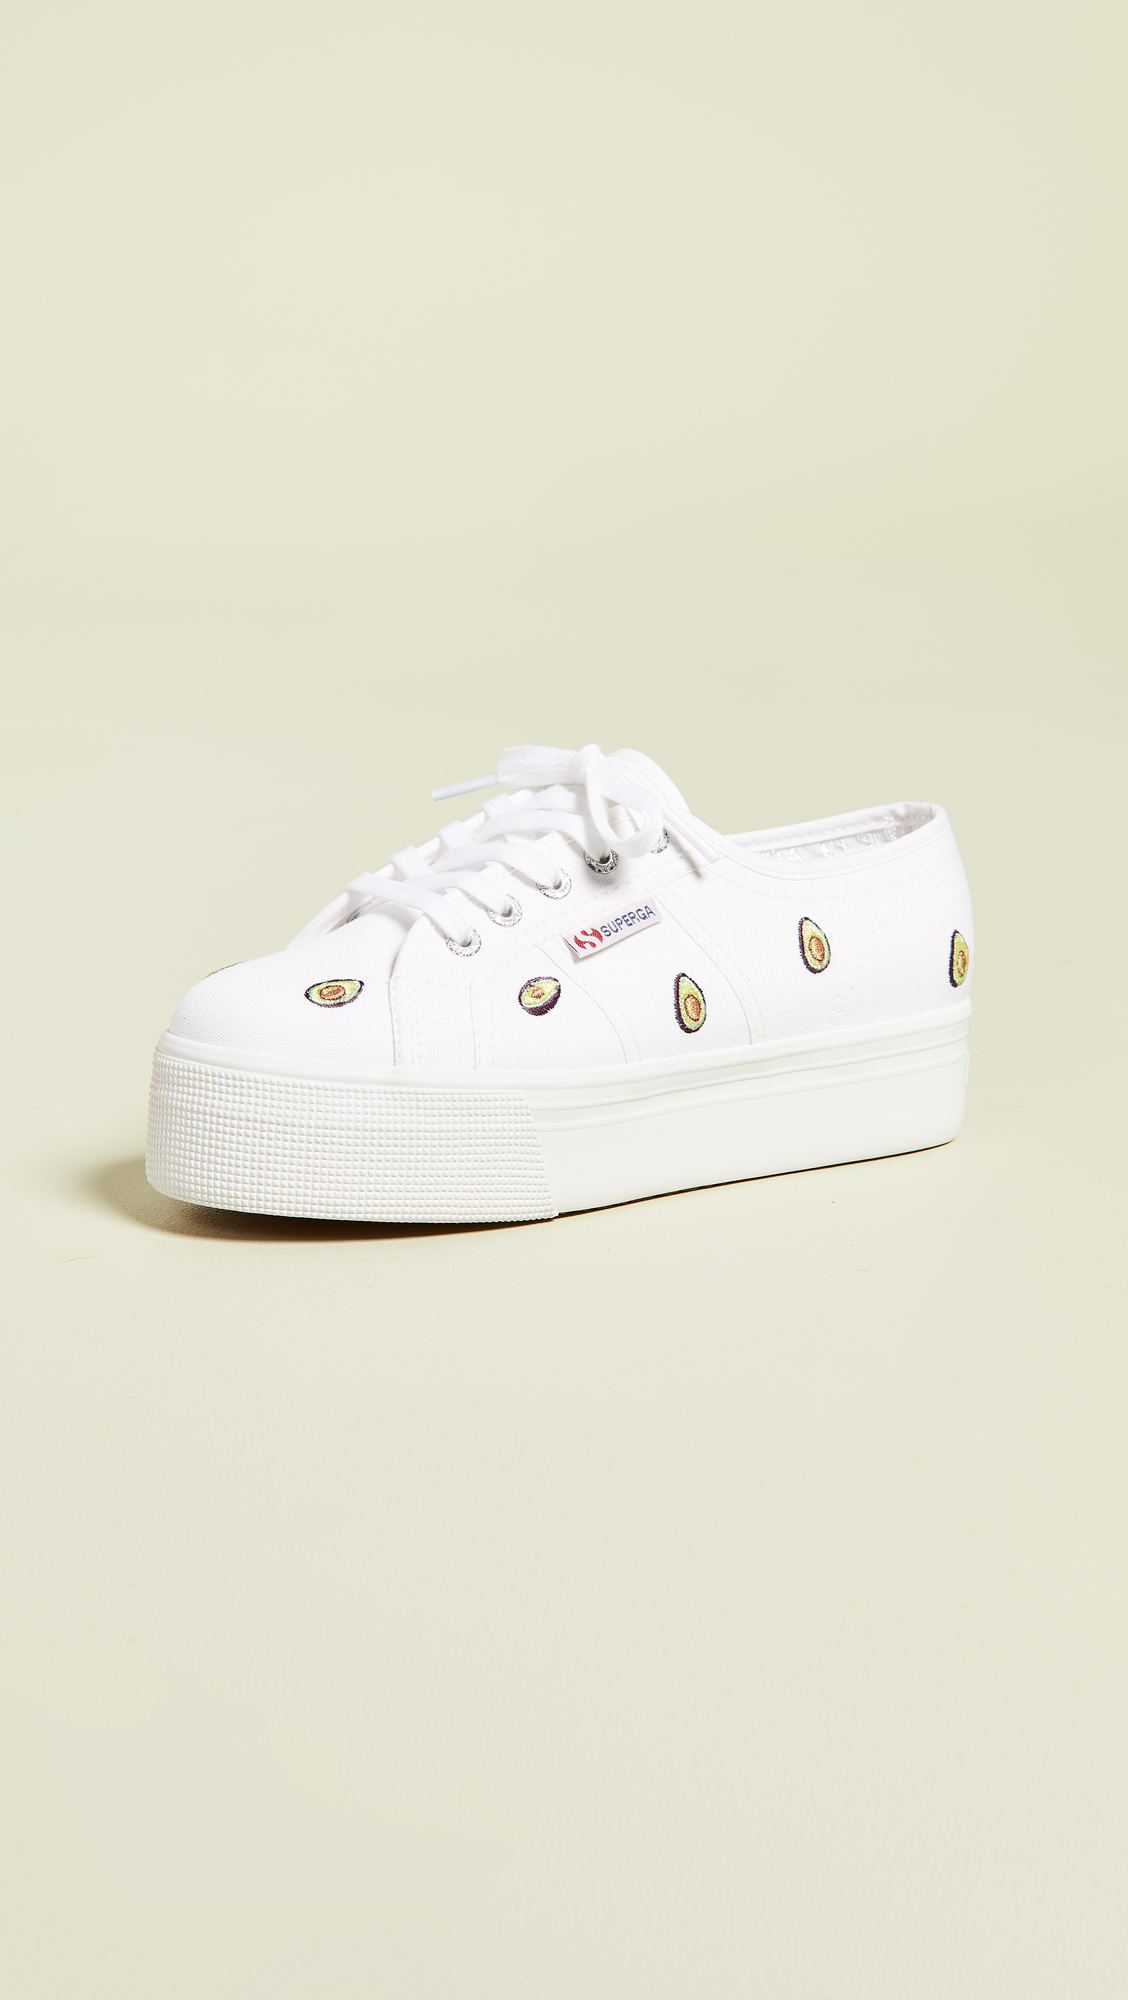 0025e127d34 Superga 2750 Avocado Cotw Platform Sneakers | SHOPBOP